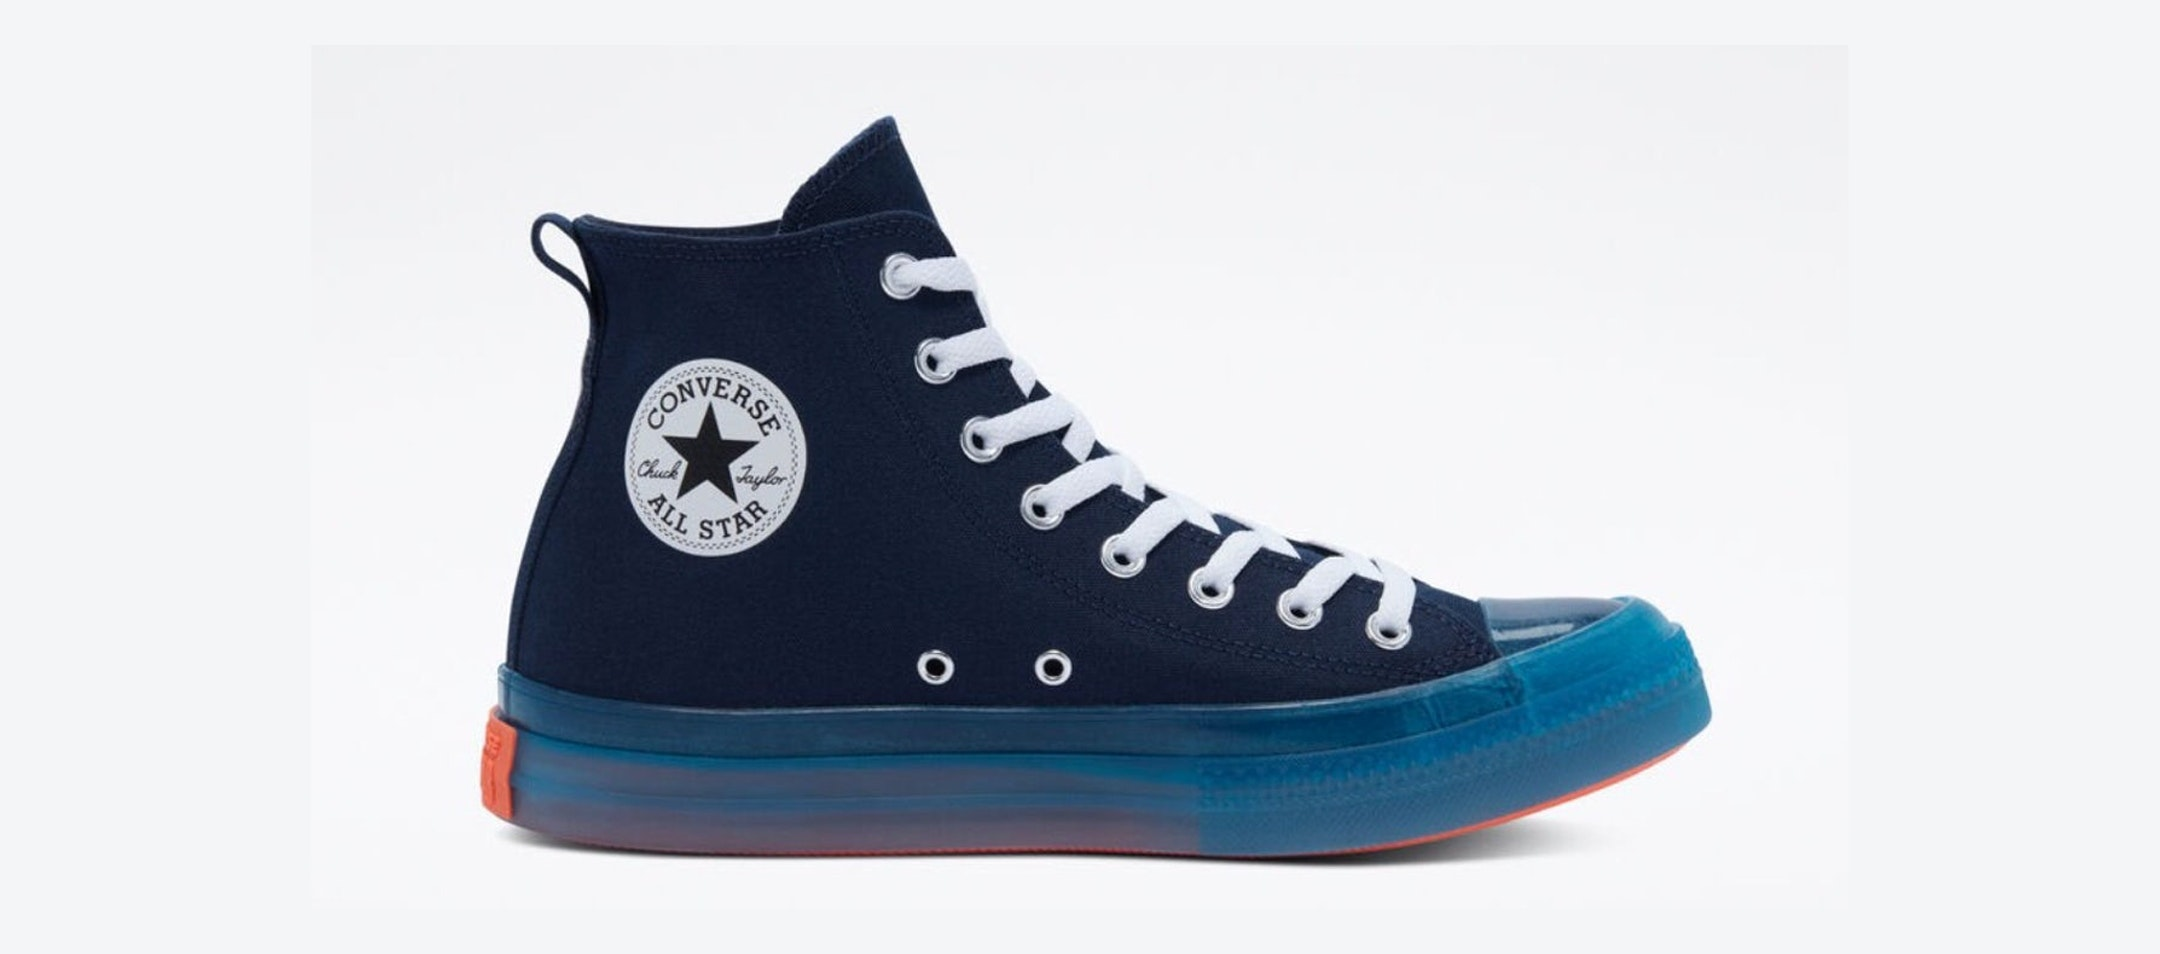 10 Best Converse Shoes For Men // ONE37pm